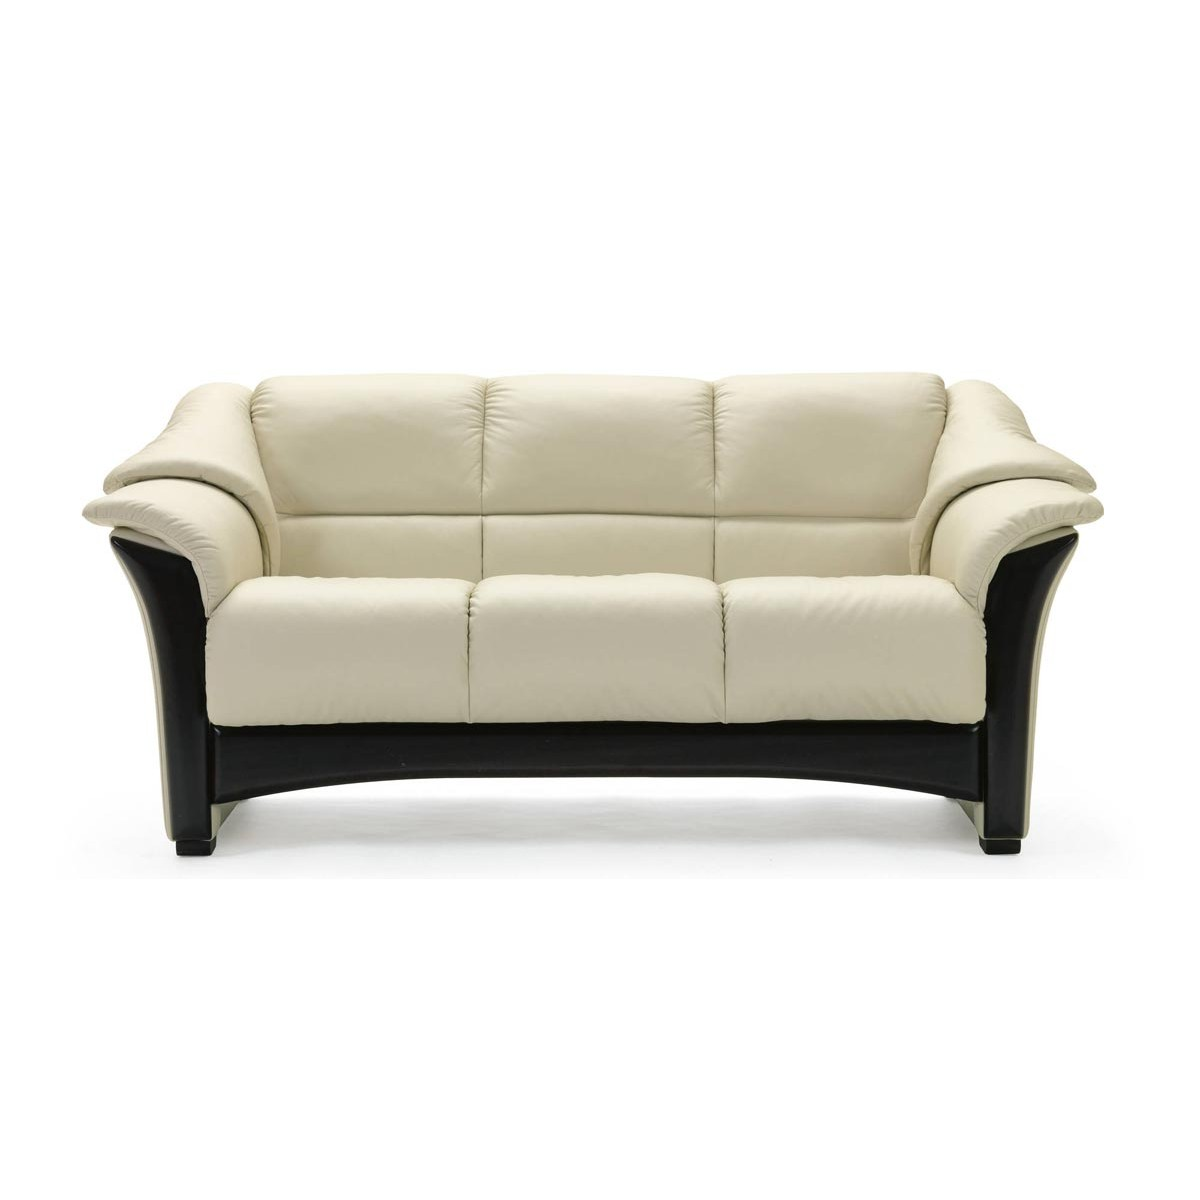 thomas garden today free product shipping fabric with home legs wood overstock tufted modern linen chesterfield loveseat